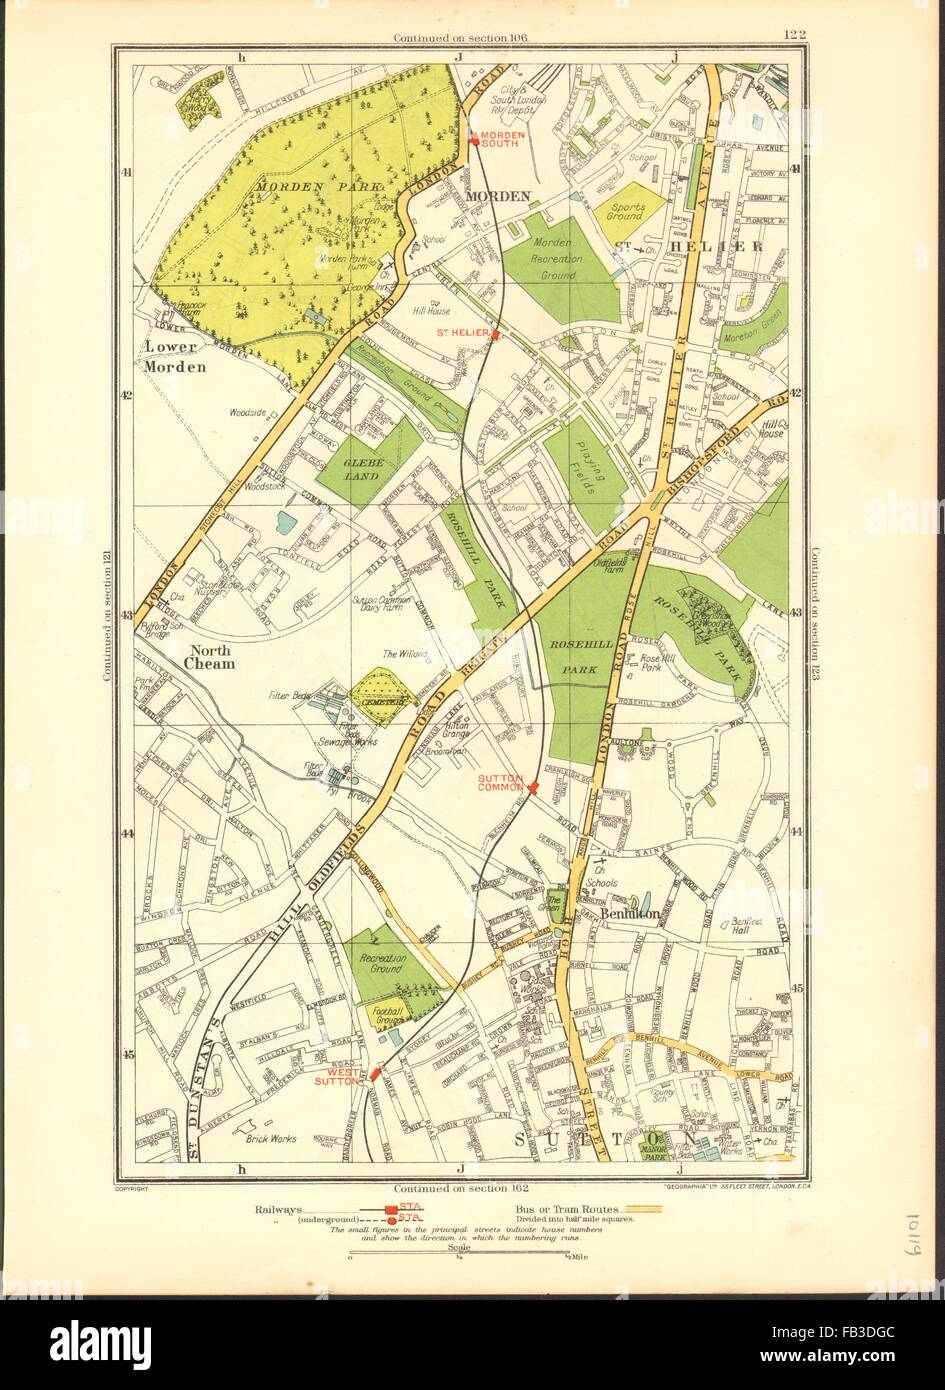 SUTTON: Benhilton, North/Lower Morden Park, Cheam, St Helier; Surrey, 1937 map - Stock Image